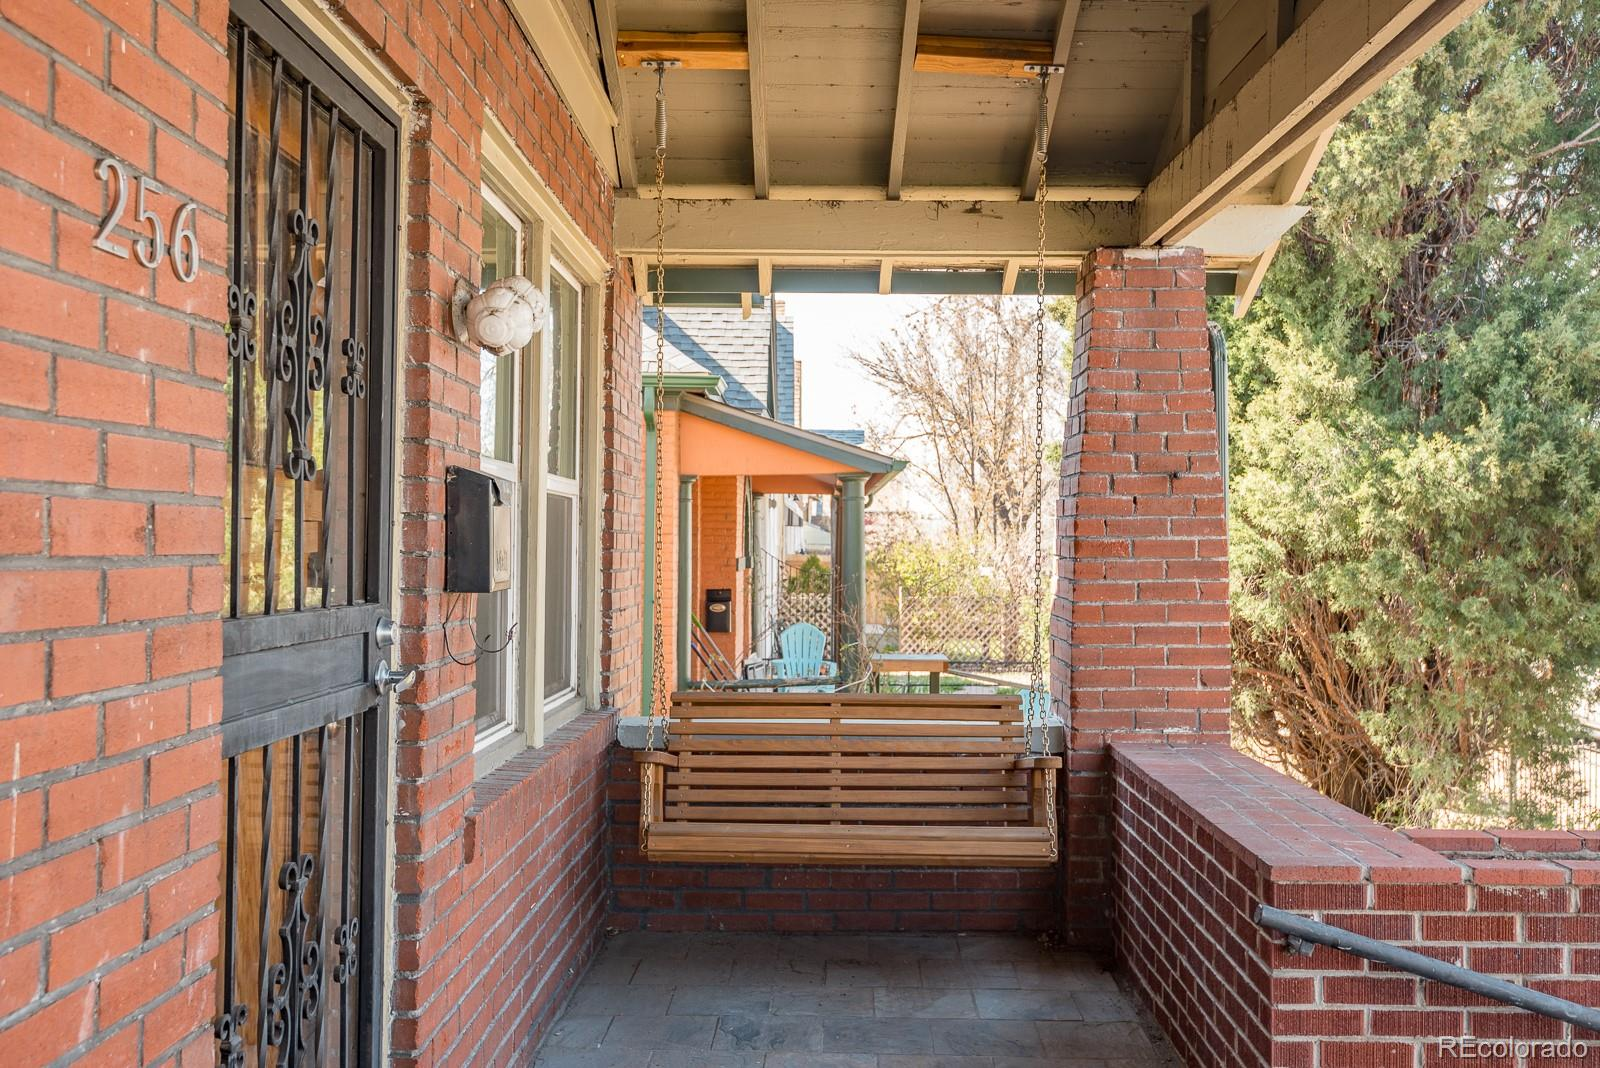 MLS# 8413392 - 4 - 256 Galapago Street, Denver, CO 80223